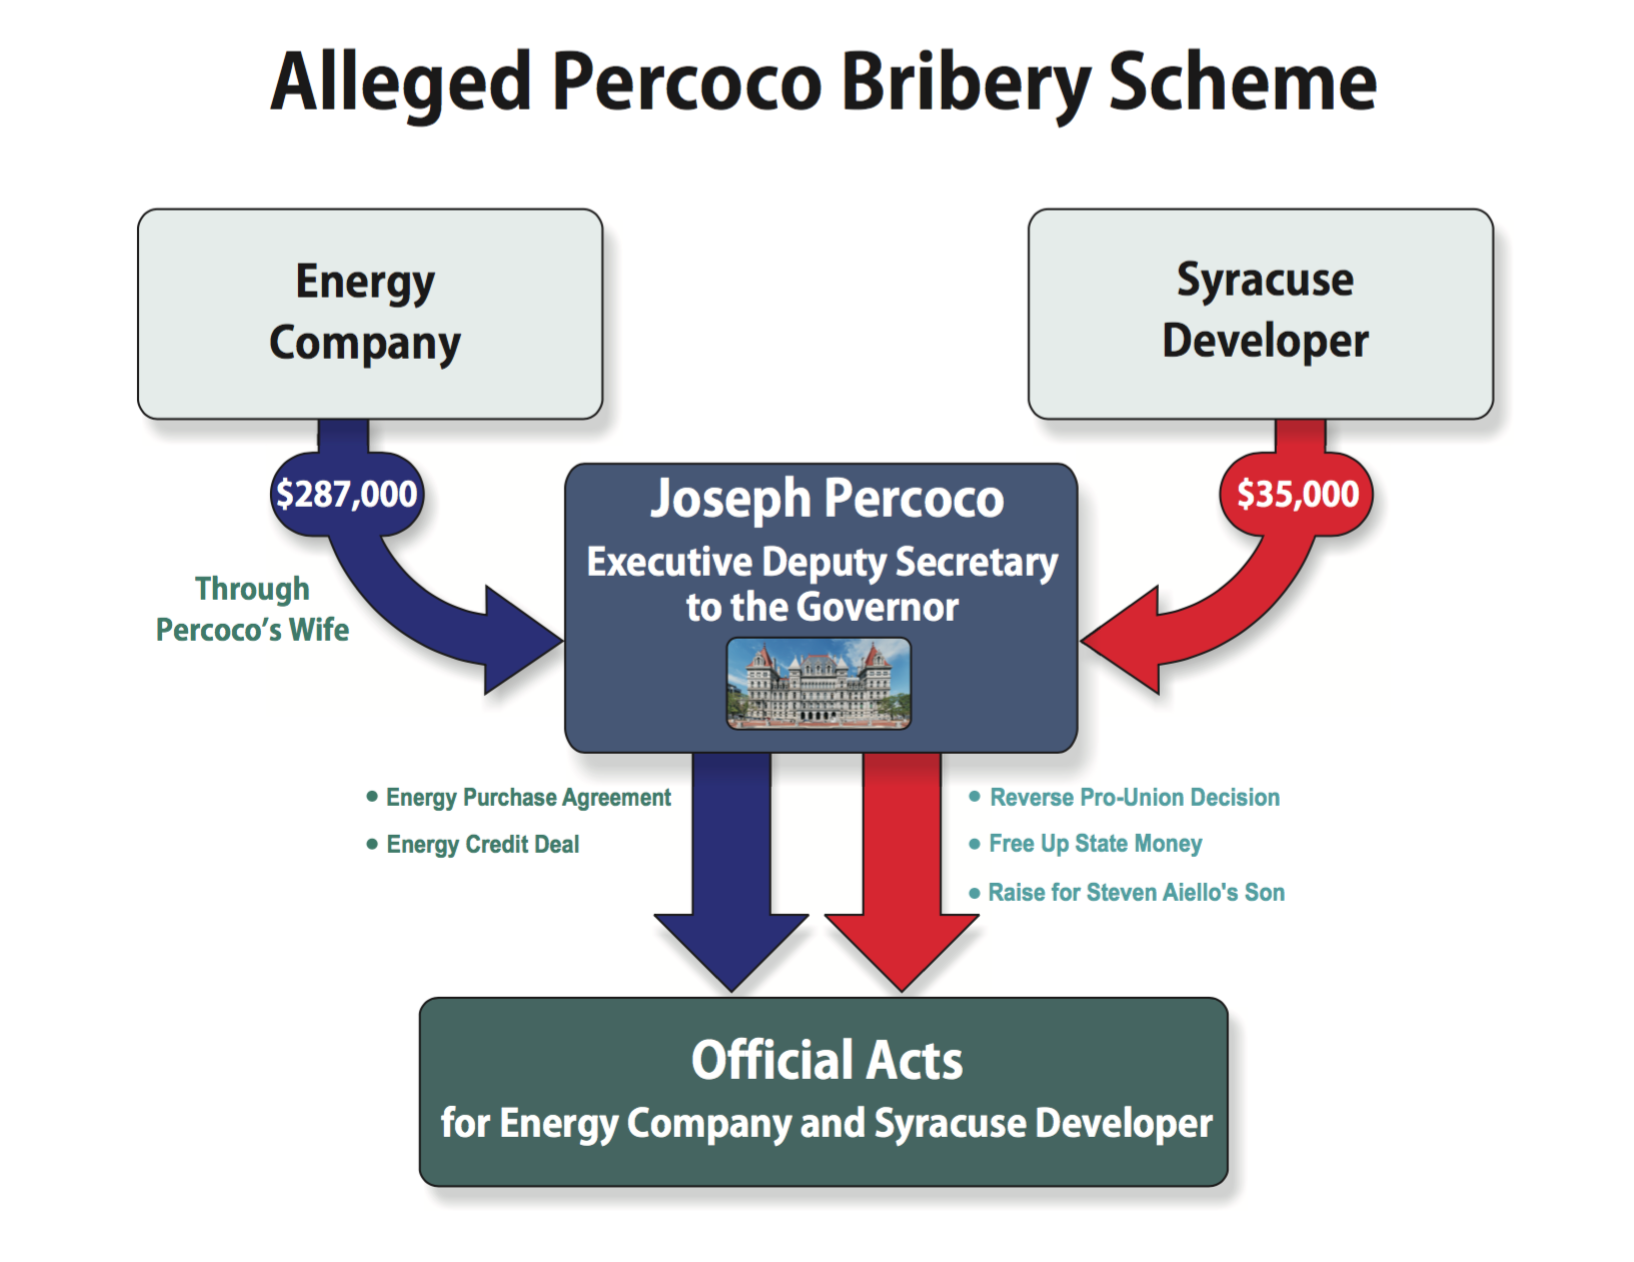 """One of the nine defendants to face Federal corruption charges was  Joseph Percoco , a former top political aide to Gov.  Andrew Cuomo . During a press conference on Thursday, U.S. Attorney Preet Bharara said that based on the allegations in the Federal criminal complaint, Mr. Percoco """"was on the take."""" """"During all times relevant"""" to the eight-defendant, Federal criminal complaint, which included Mr. Percoco, his """"primary work location was in Manhattan, New York, although he typically traveled to Albany, New York approximately several times per month,"""" read, in part, the allegations in the complaint. Manhattan is the jurisdiction of District Attorney  Cyrus Vance, Jr.  (D-New York County). Source : U.S. Attorney's Office for the Southern District of New York/Public Domain"""